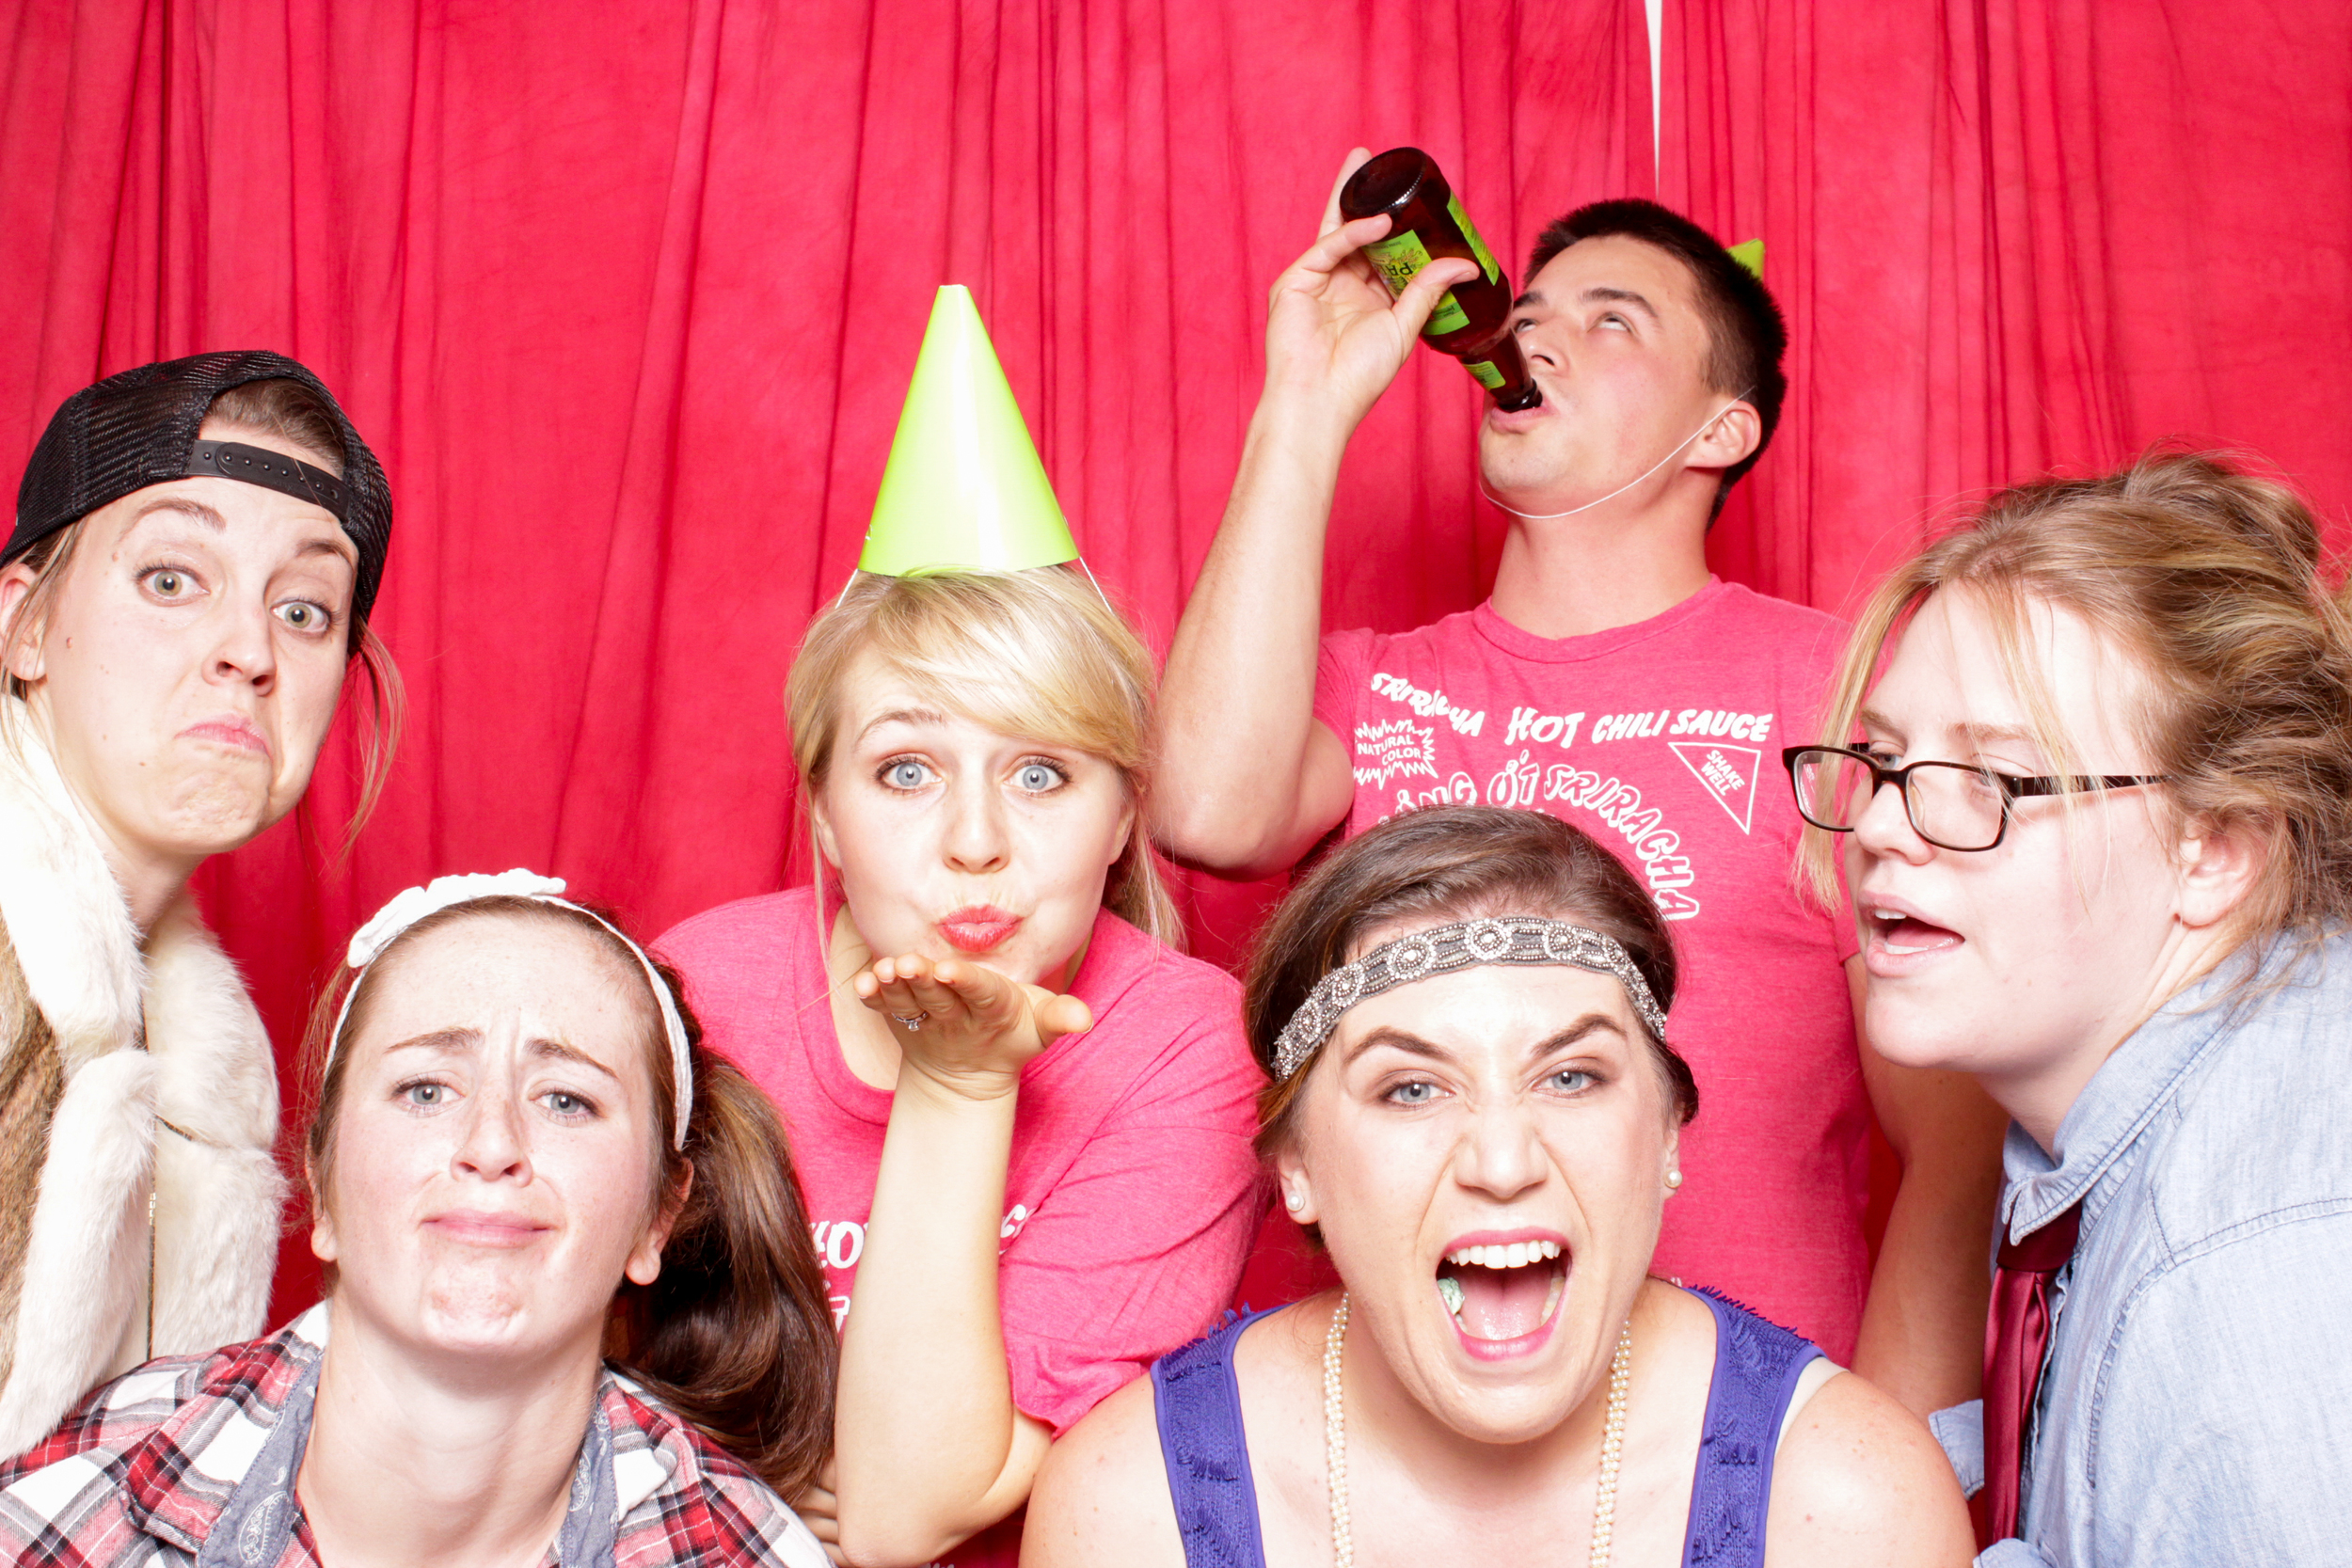 chico-photo-booth-rental-halloween-party-132.jpg